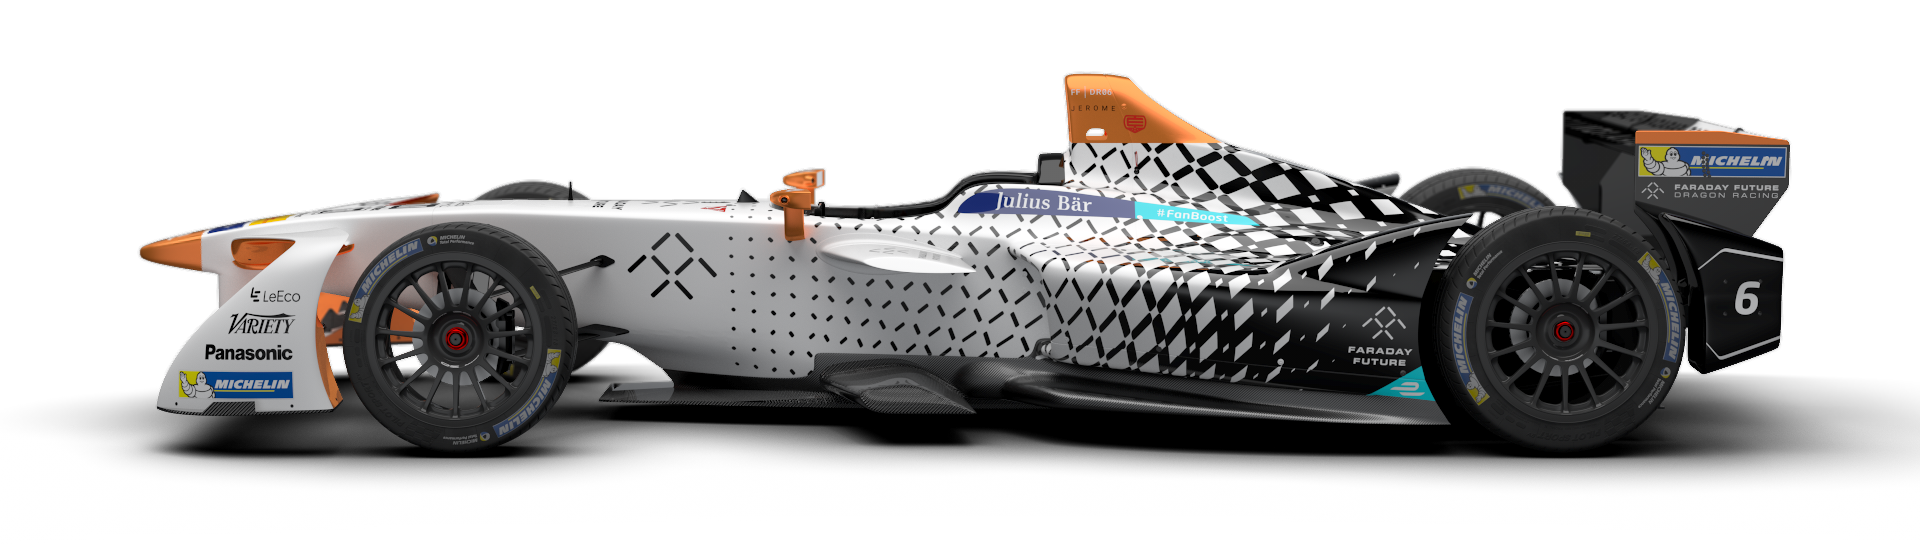 Faraday Future Dragon Racing Reveals Formula E Season Three Livery